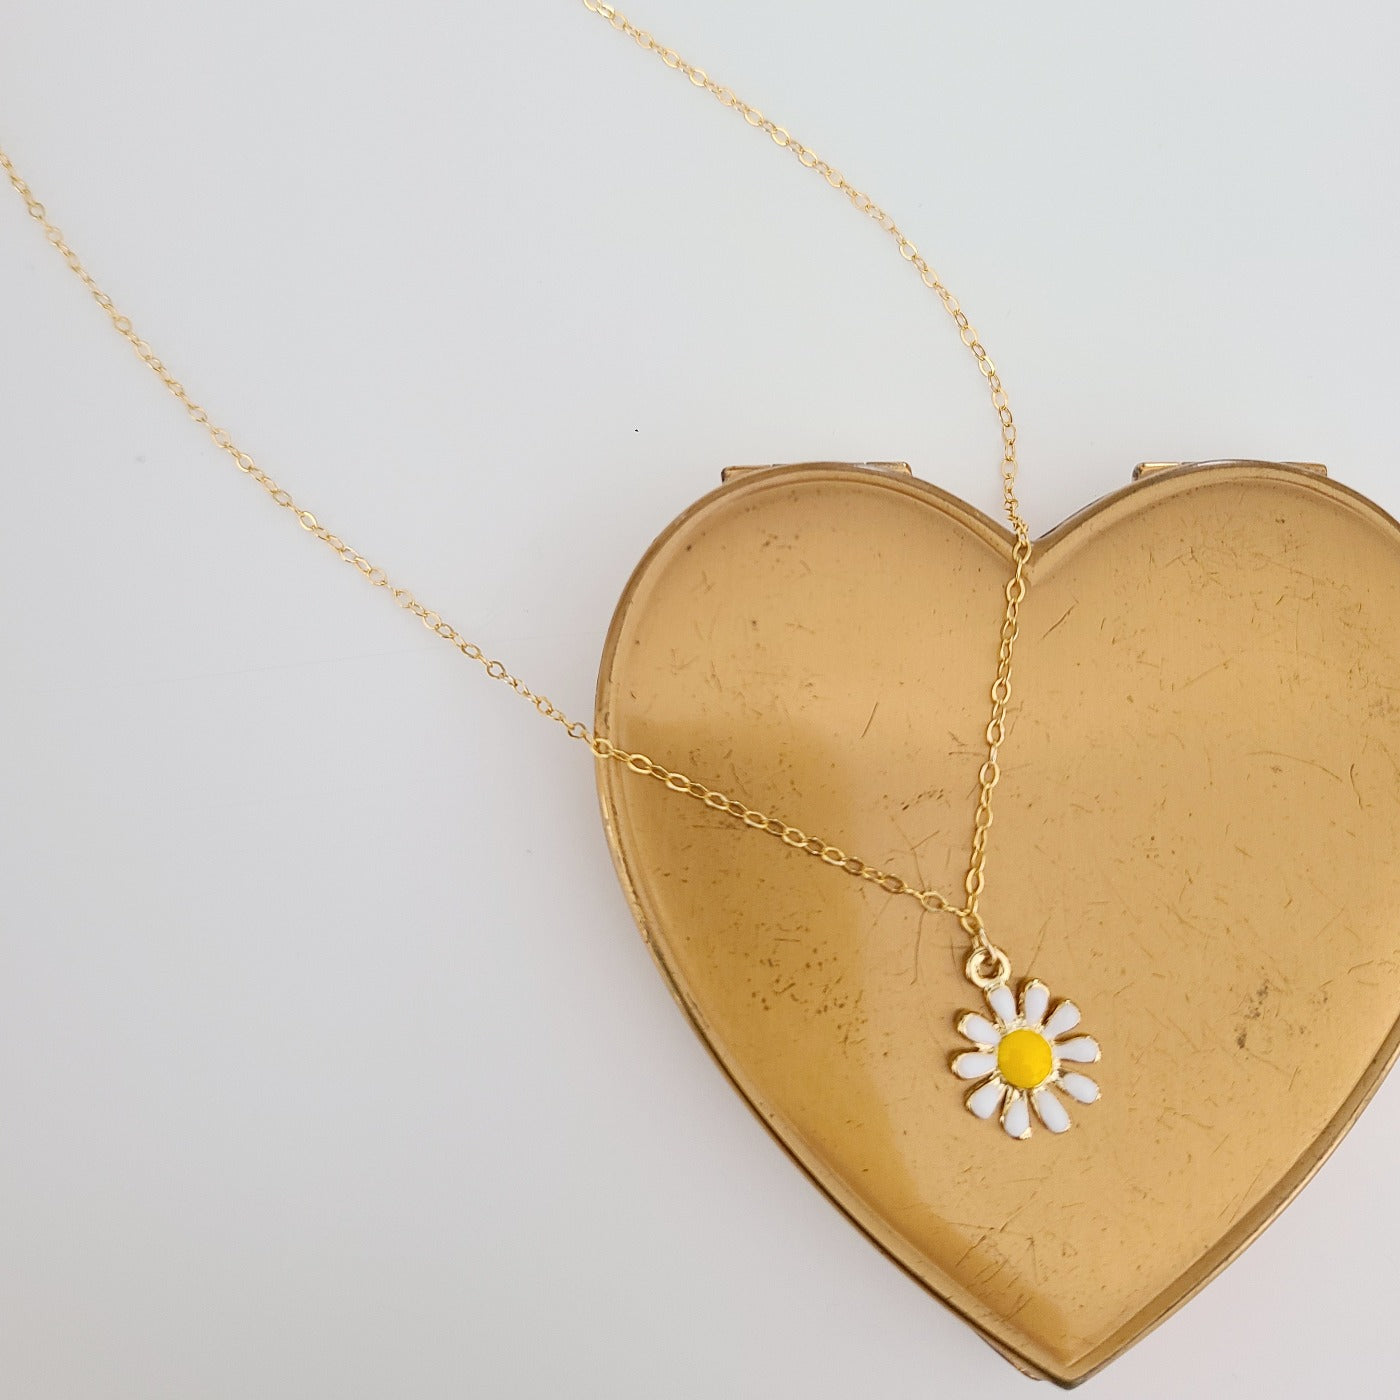 The A Daisy for Helen Necklace is a lovely white epoxy daisy pendant on a delicate,  gold vermeil chain with tiny lobster clasp. This necklace is available in both 16 inch and 18 inch lengths.